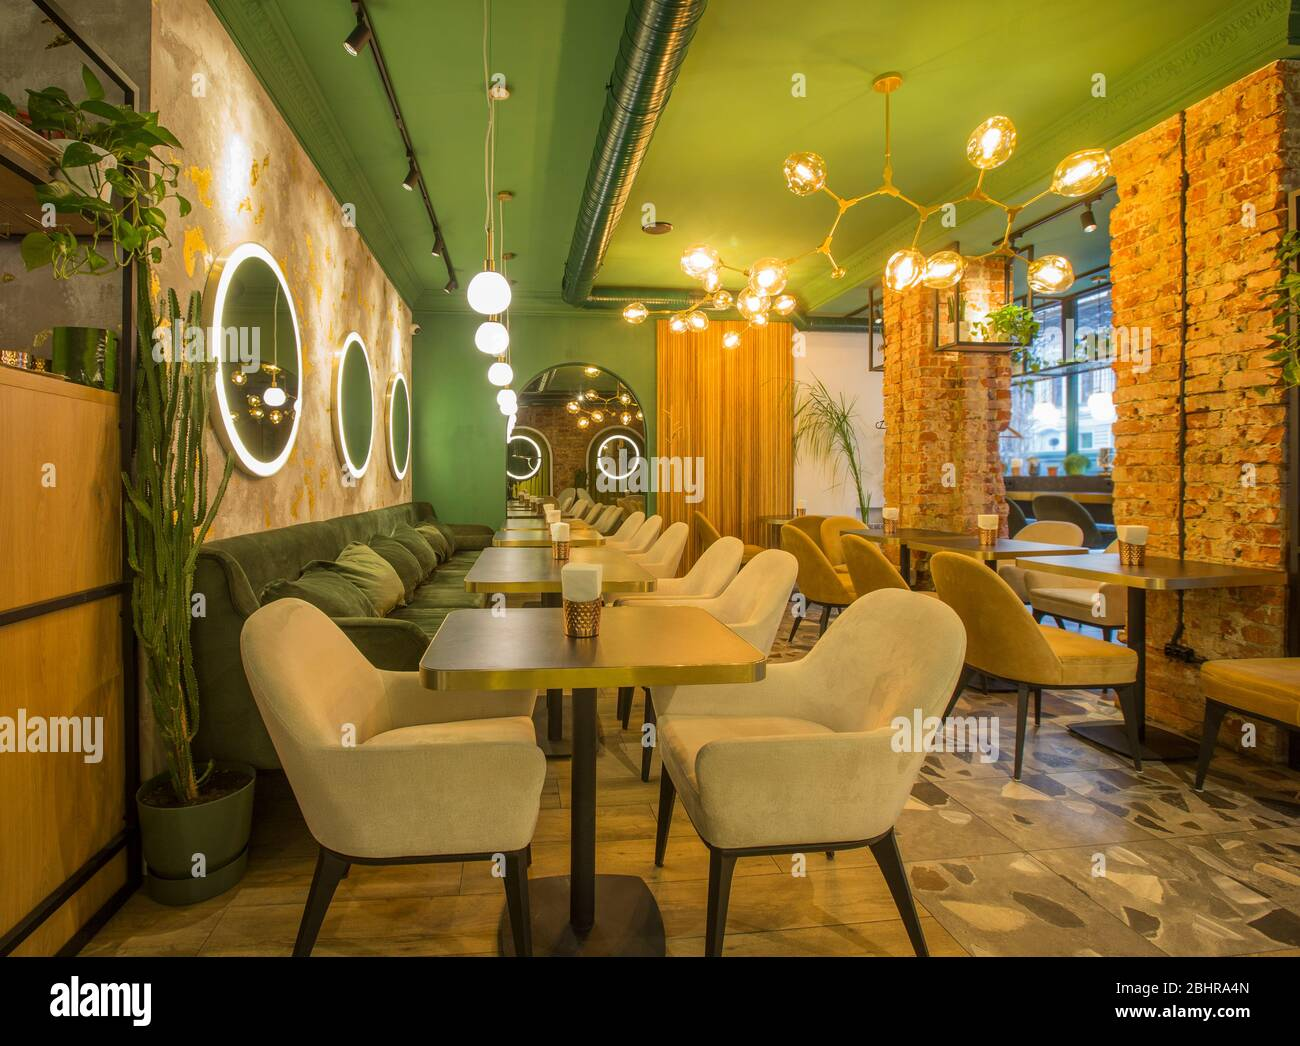 Roomy Hall In Restaurant Or Cafe With Wooden Furniture And Walls Of Red Bricks Stock Photo Alamy